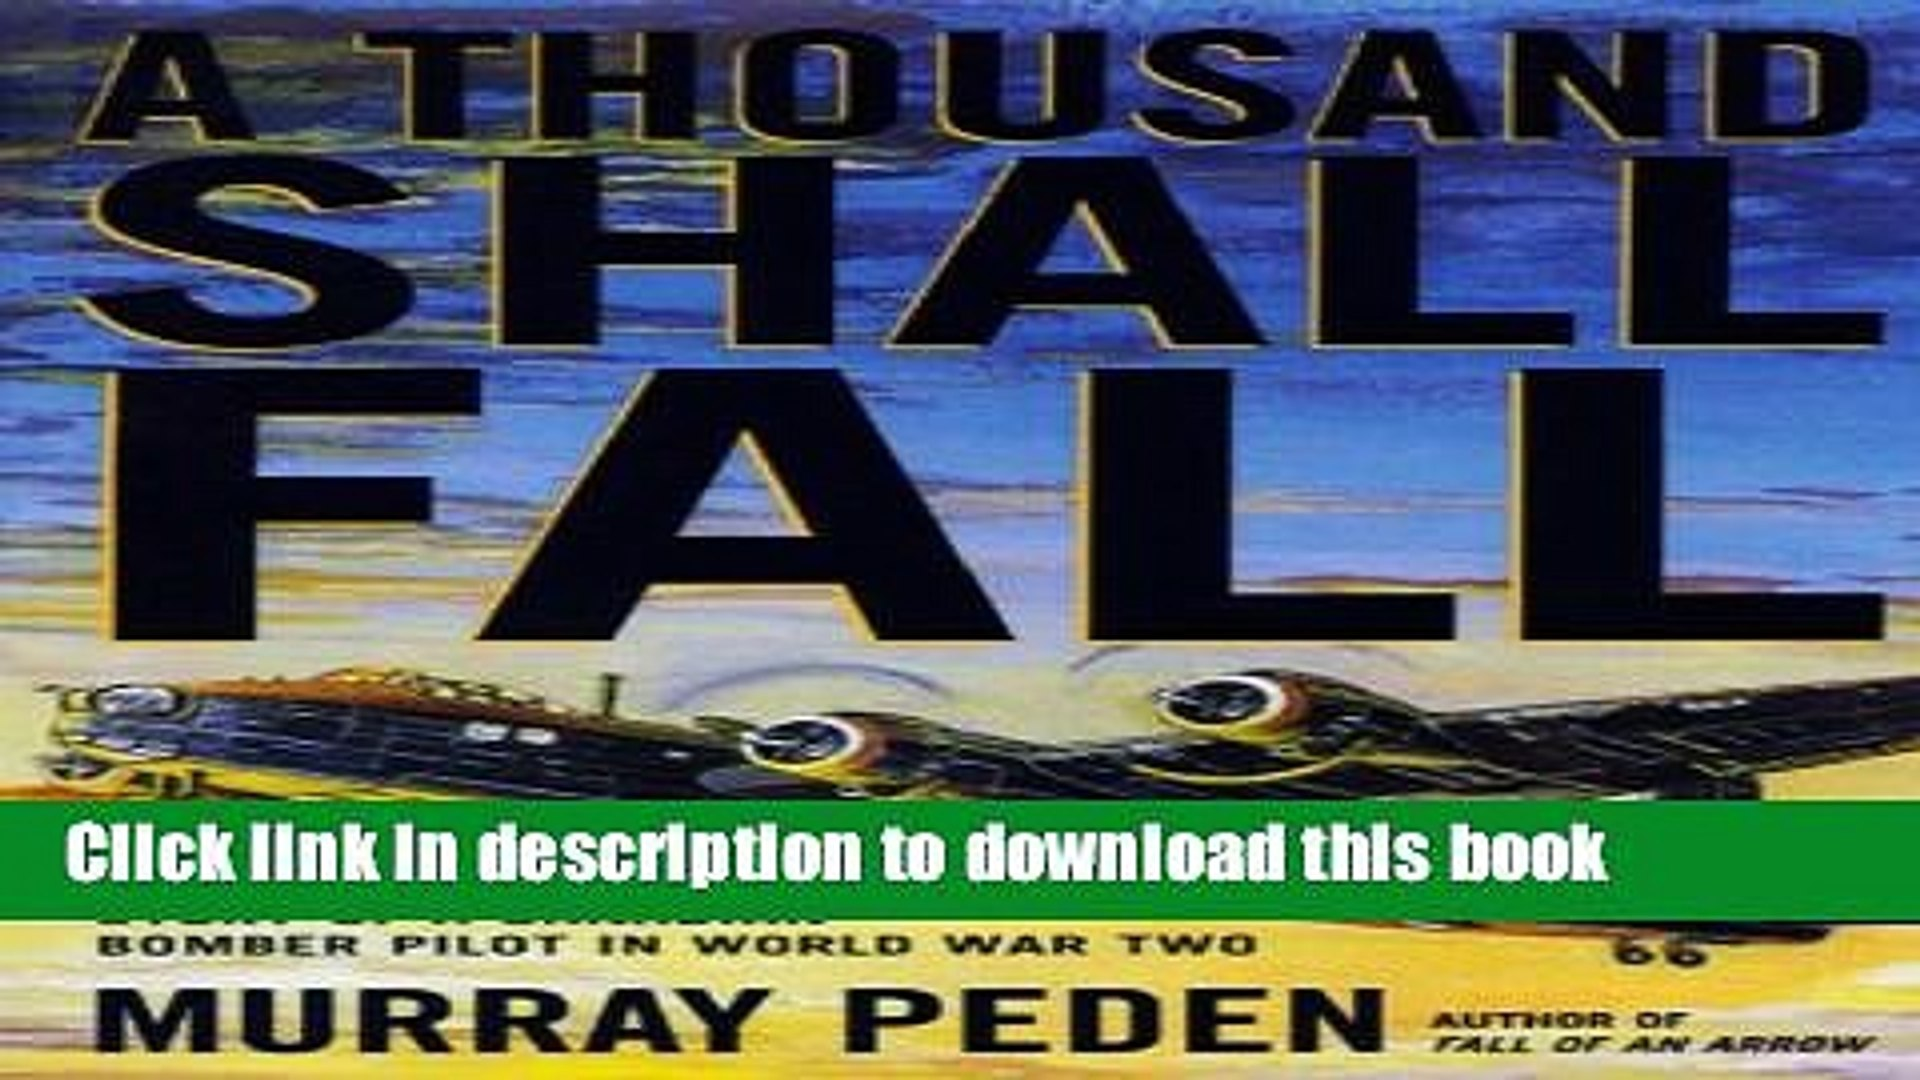 Download A Thousand Shall Fall: The True Story of a Canadian Bomber Pilot in World War Two E-Book